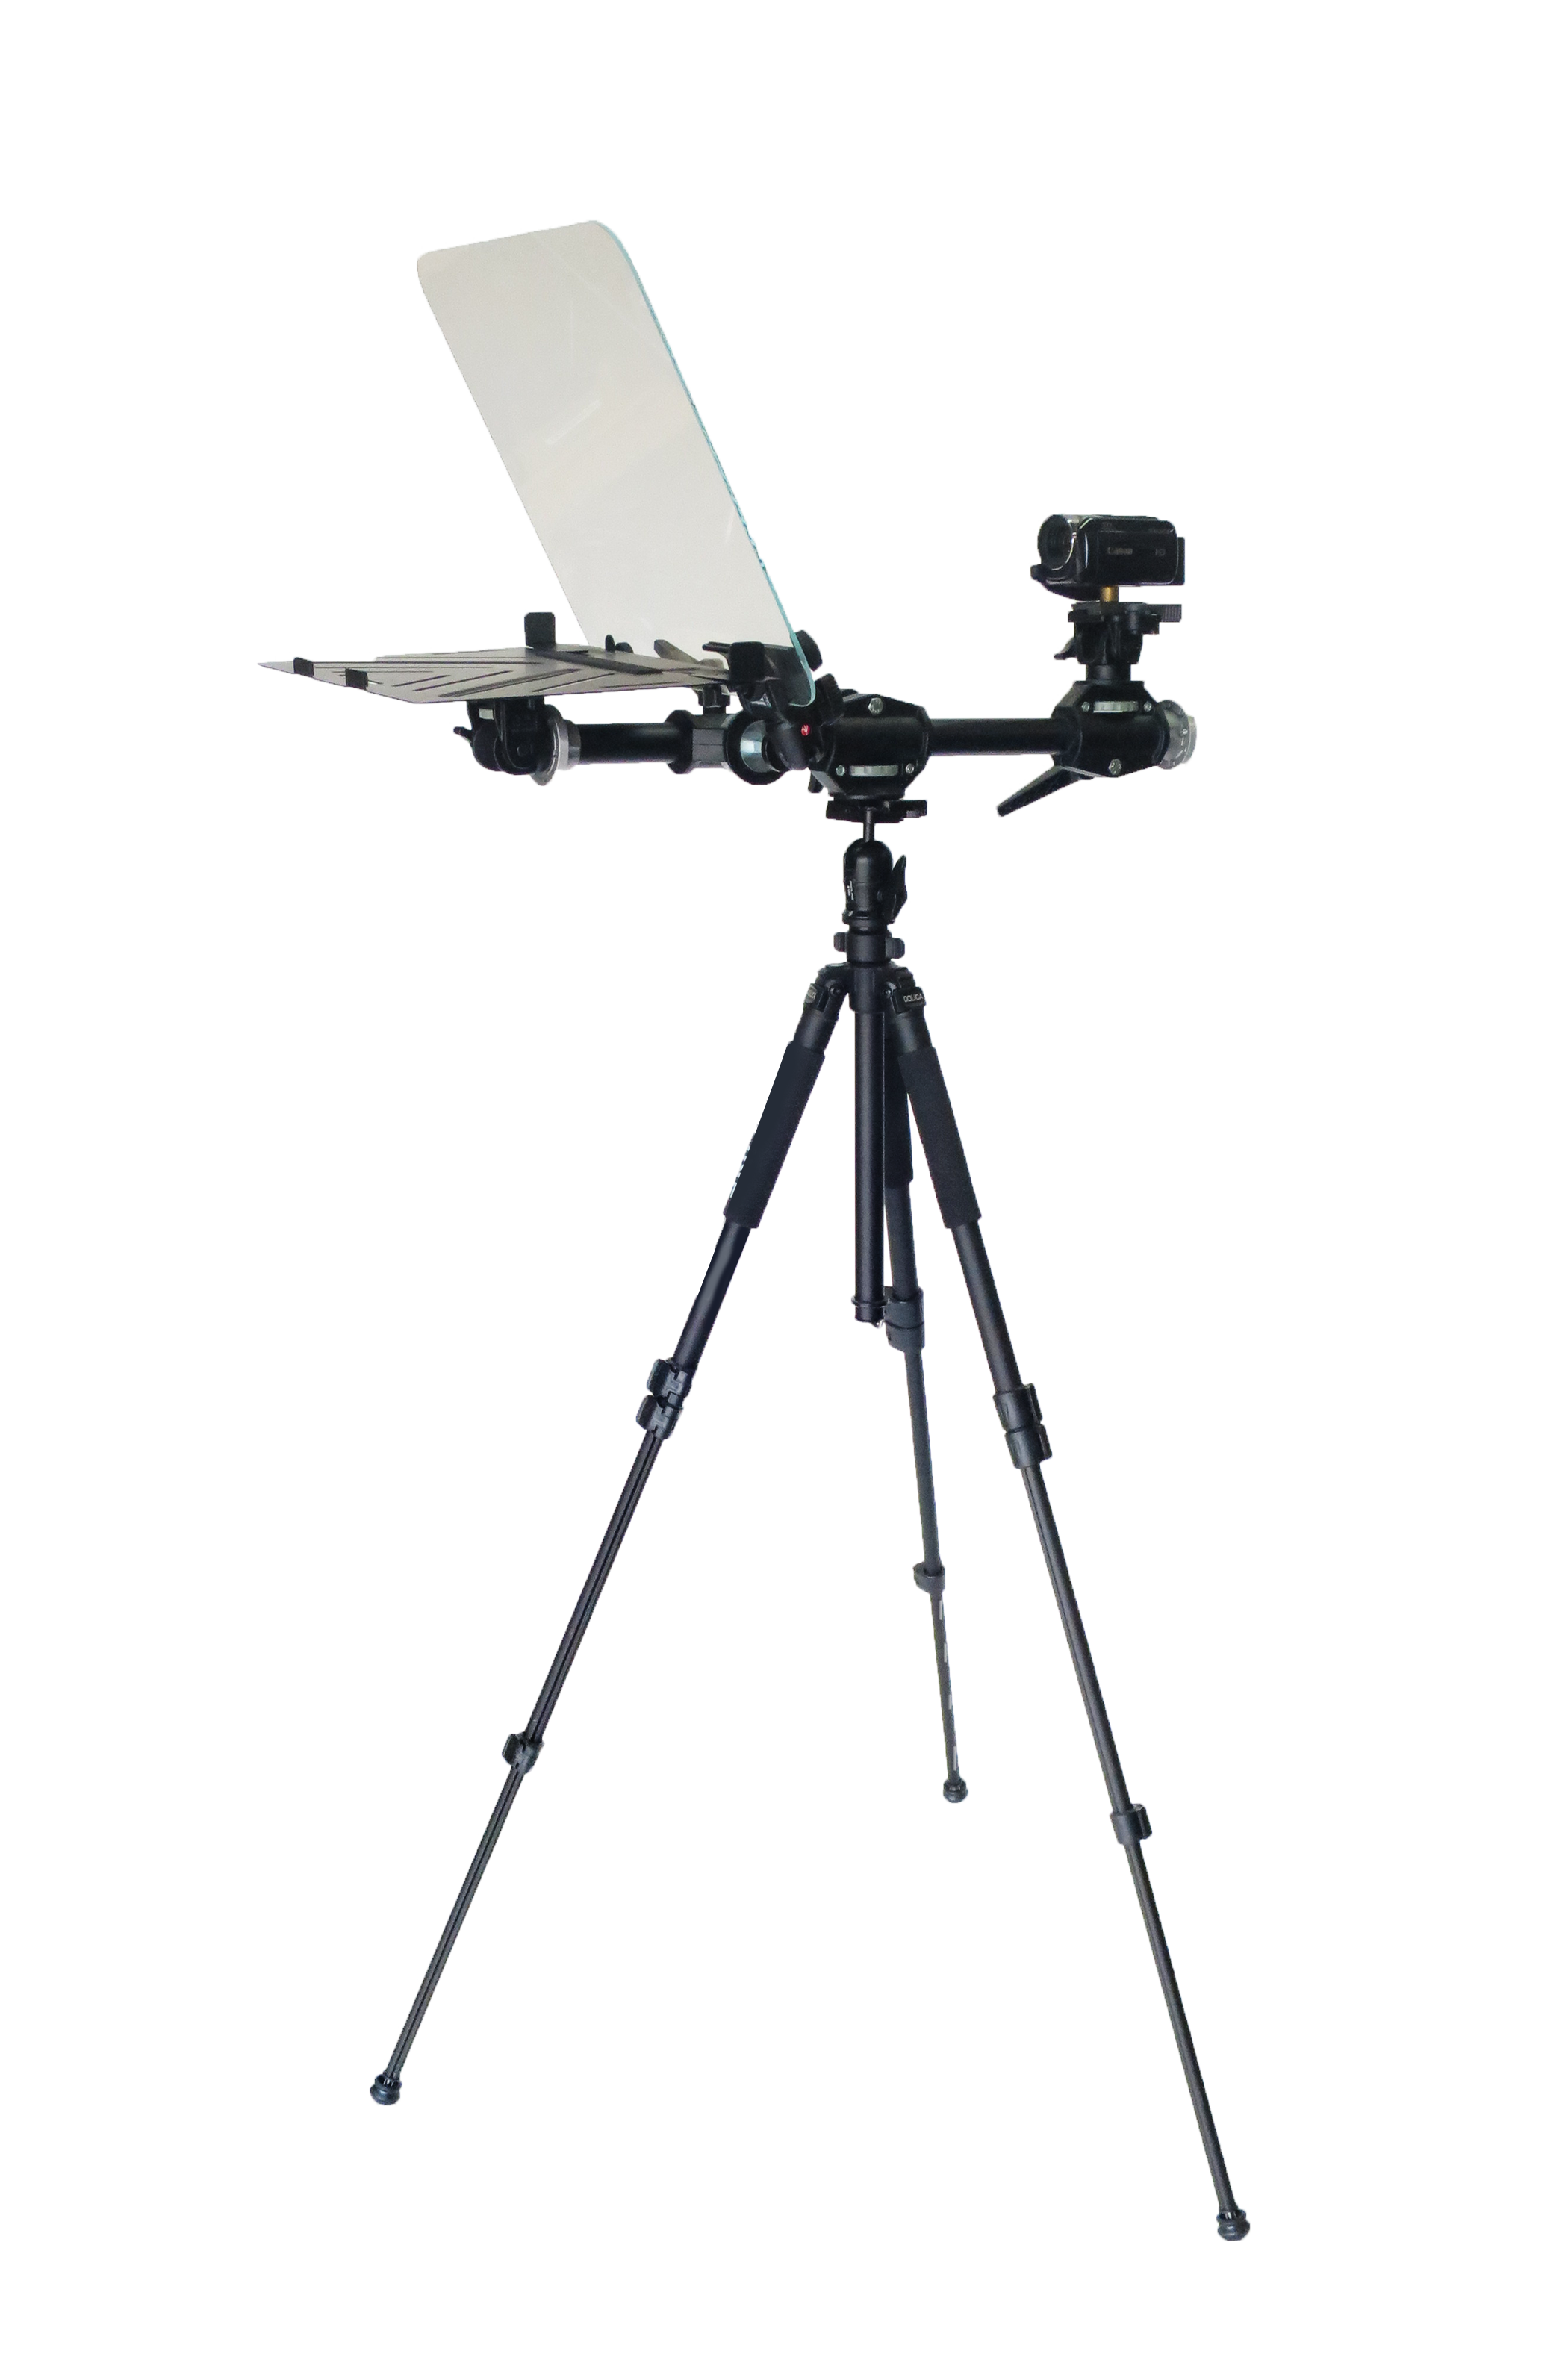 Executive Teleprompter Full Front View Telepromptermirror.com